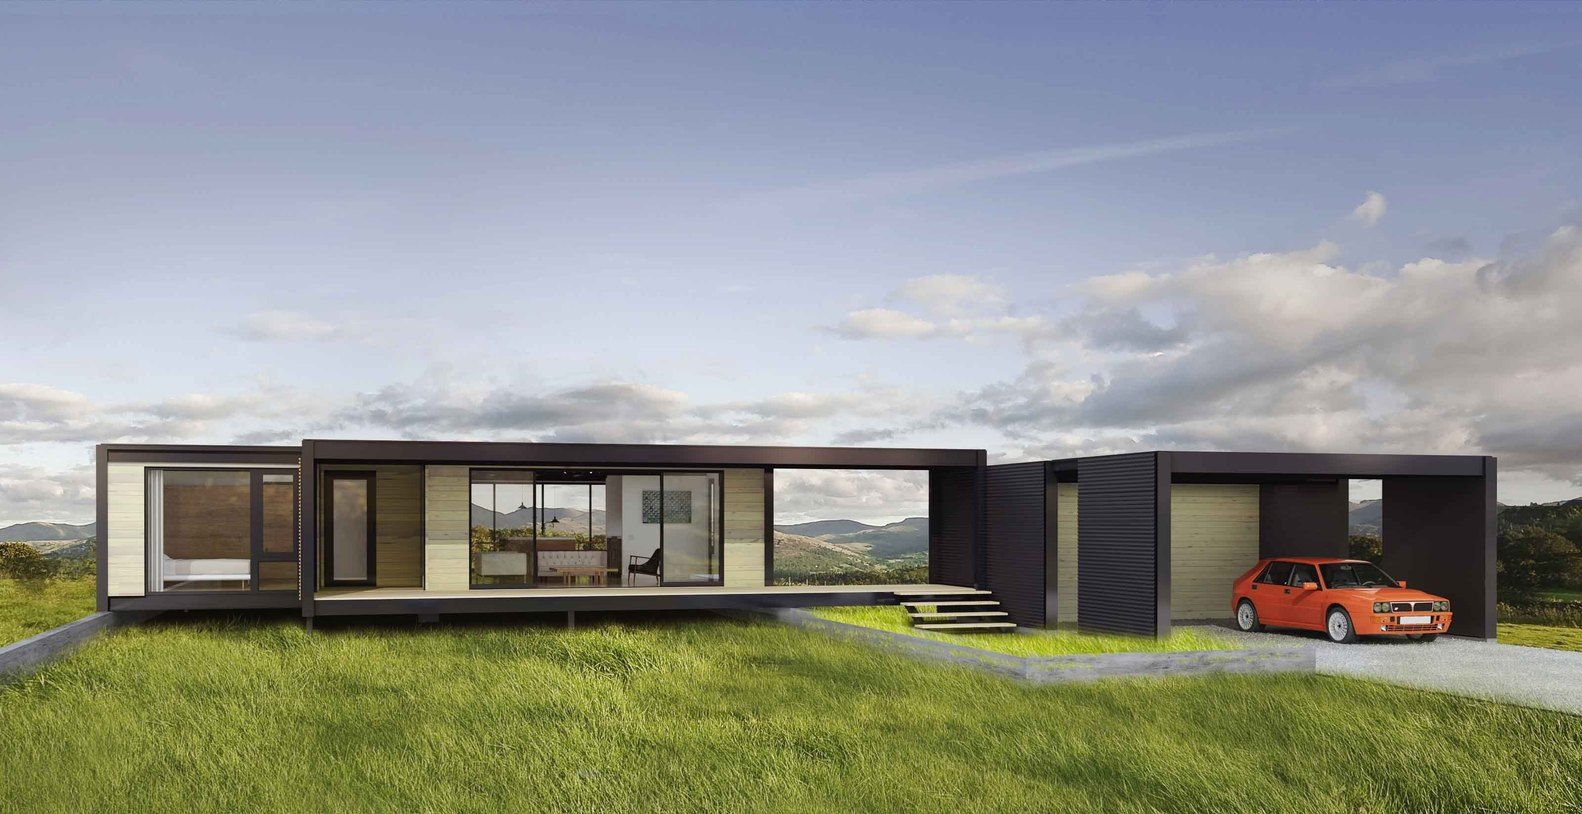 Backyard Cottage Prefab Design House Plan Affordable: Gallery Of Connect:Homes Offers Affordable, Modern